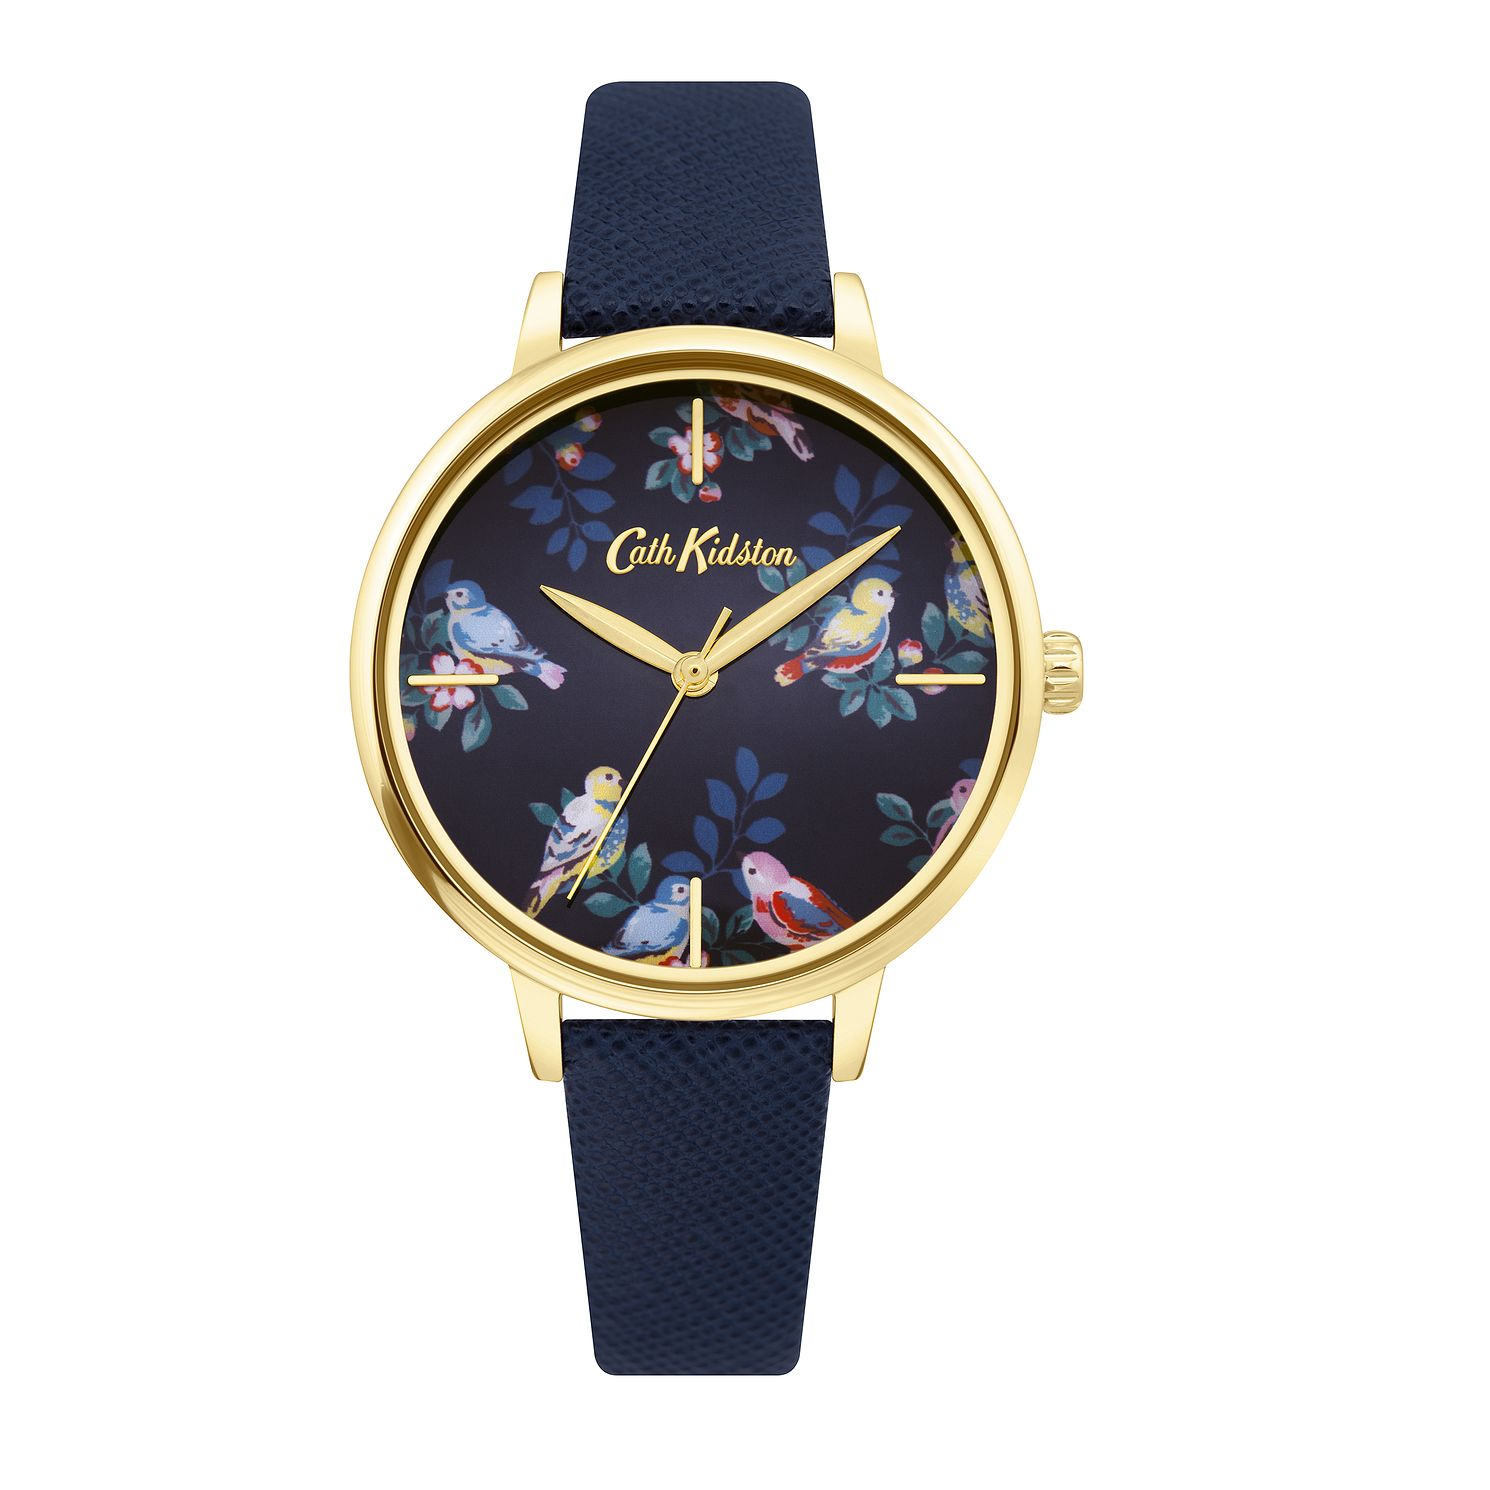 Cath Kidston Spring Birds Ladies' Navy Leather Strap Watch - Product number 4095278